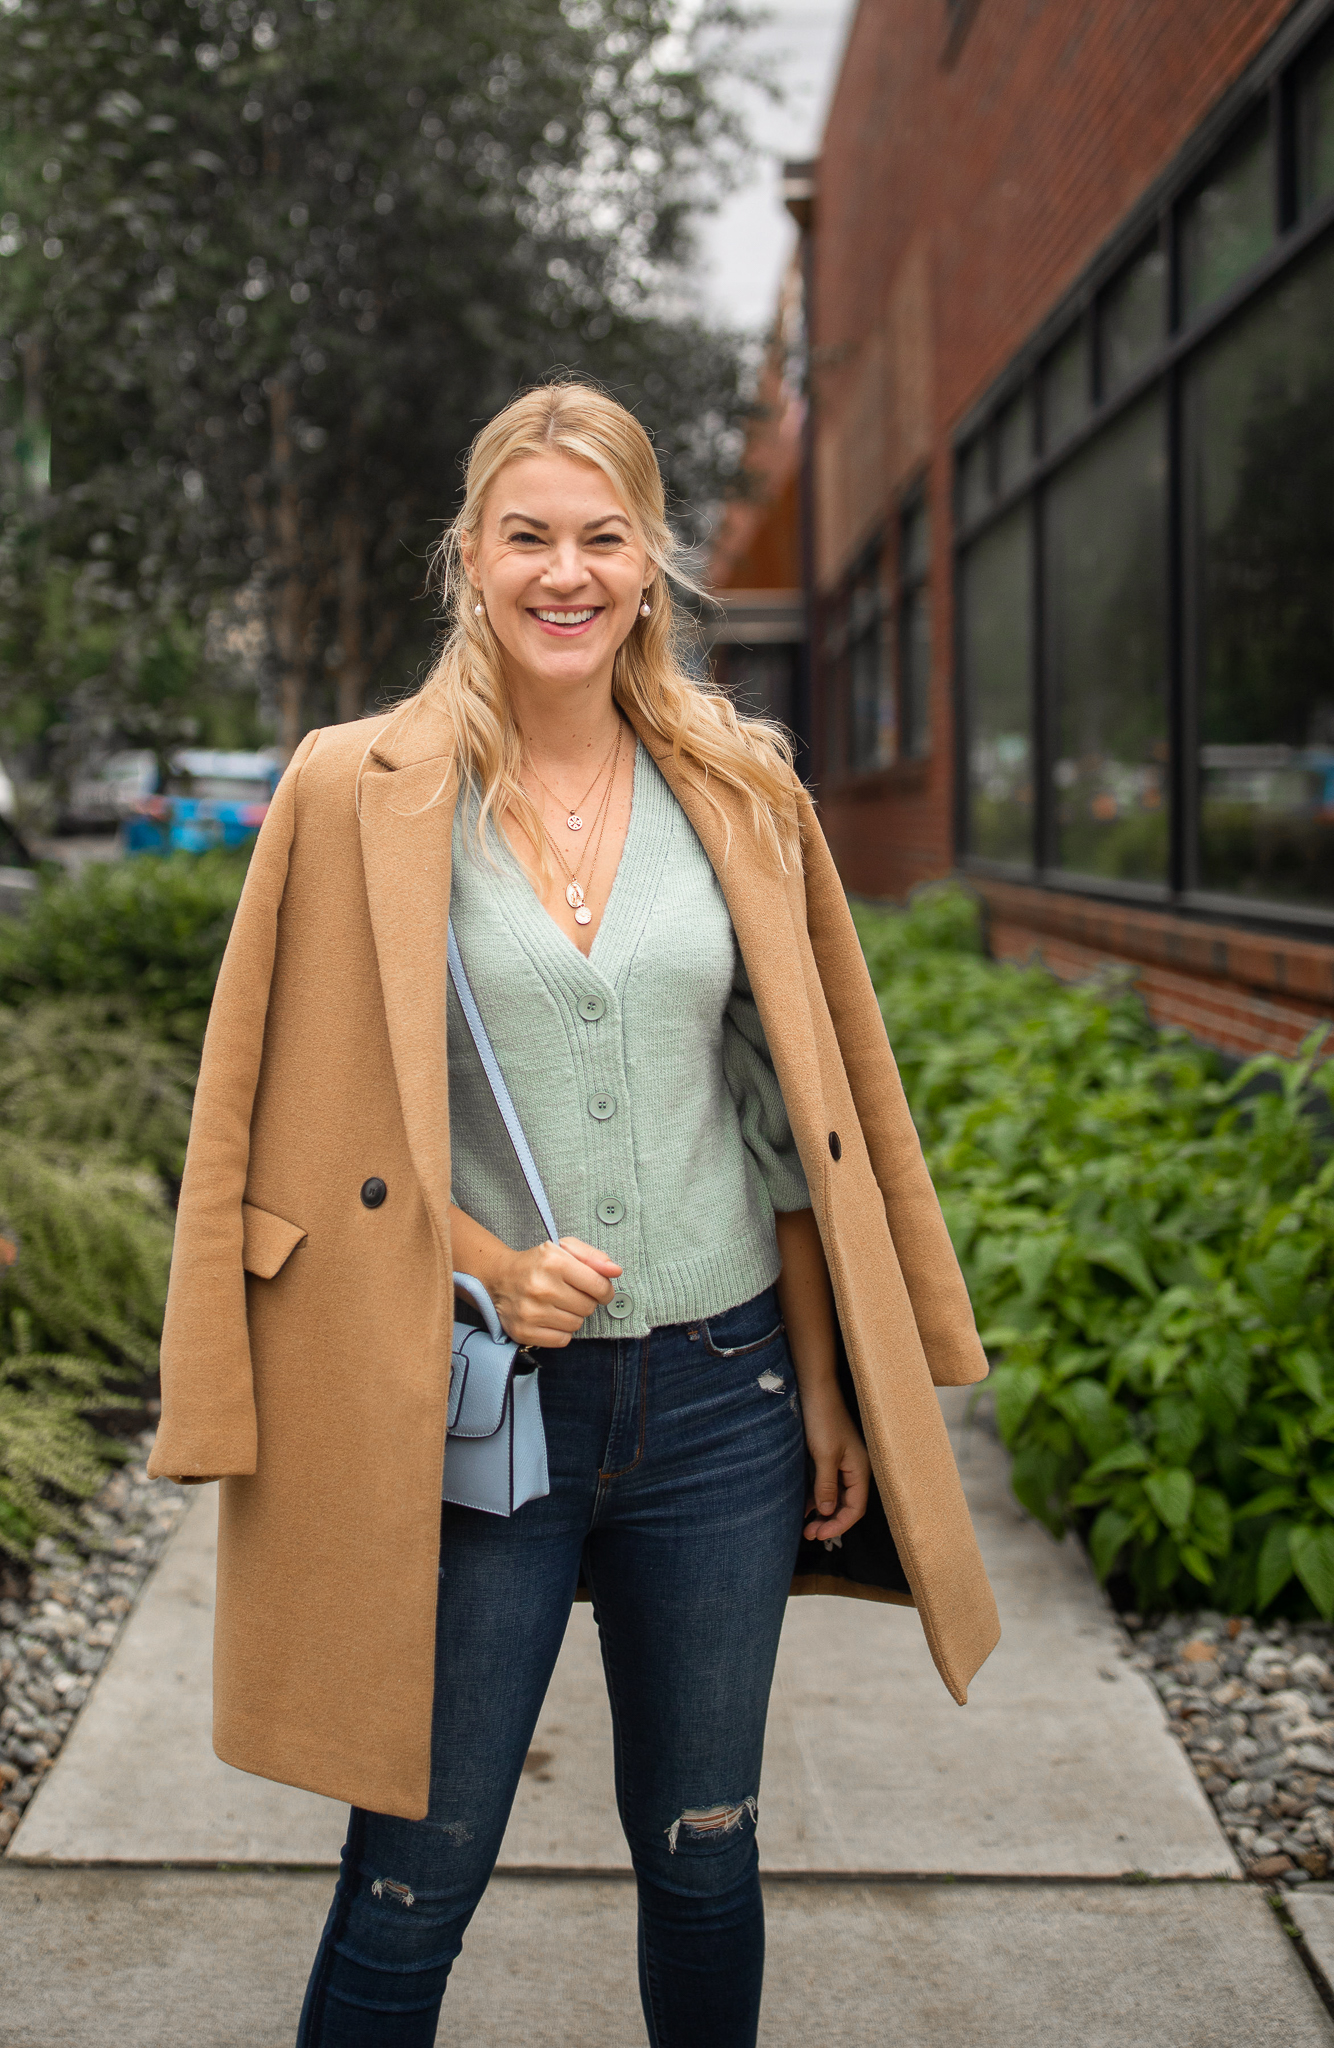 Knit Cardigan by popular Seattle tall fashion blog, Whit Wanders: image of a woman wearing a green H&M knit cardigan, camel color wool coat, and distressed jeans.